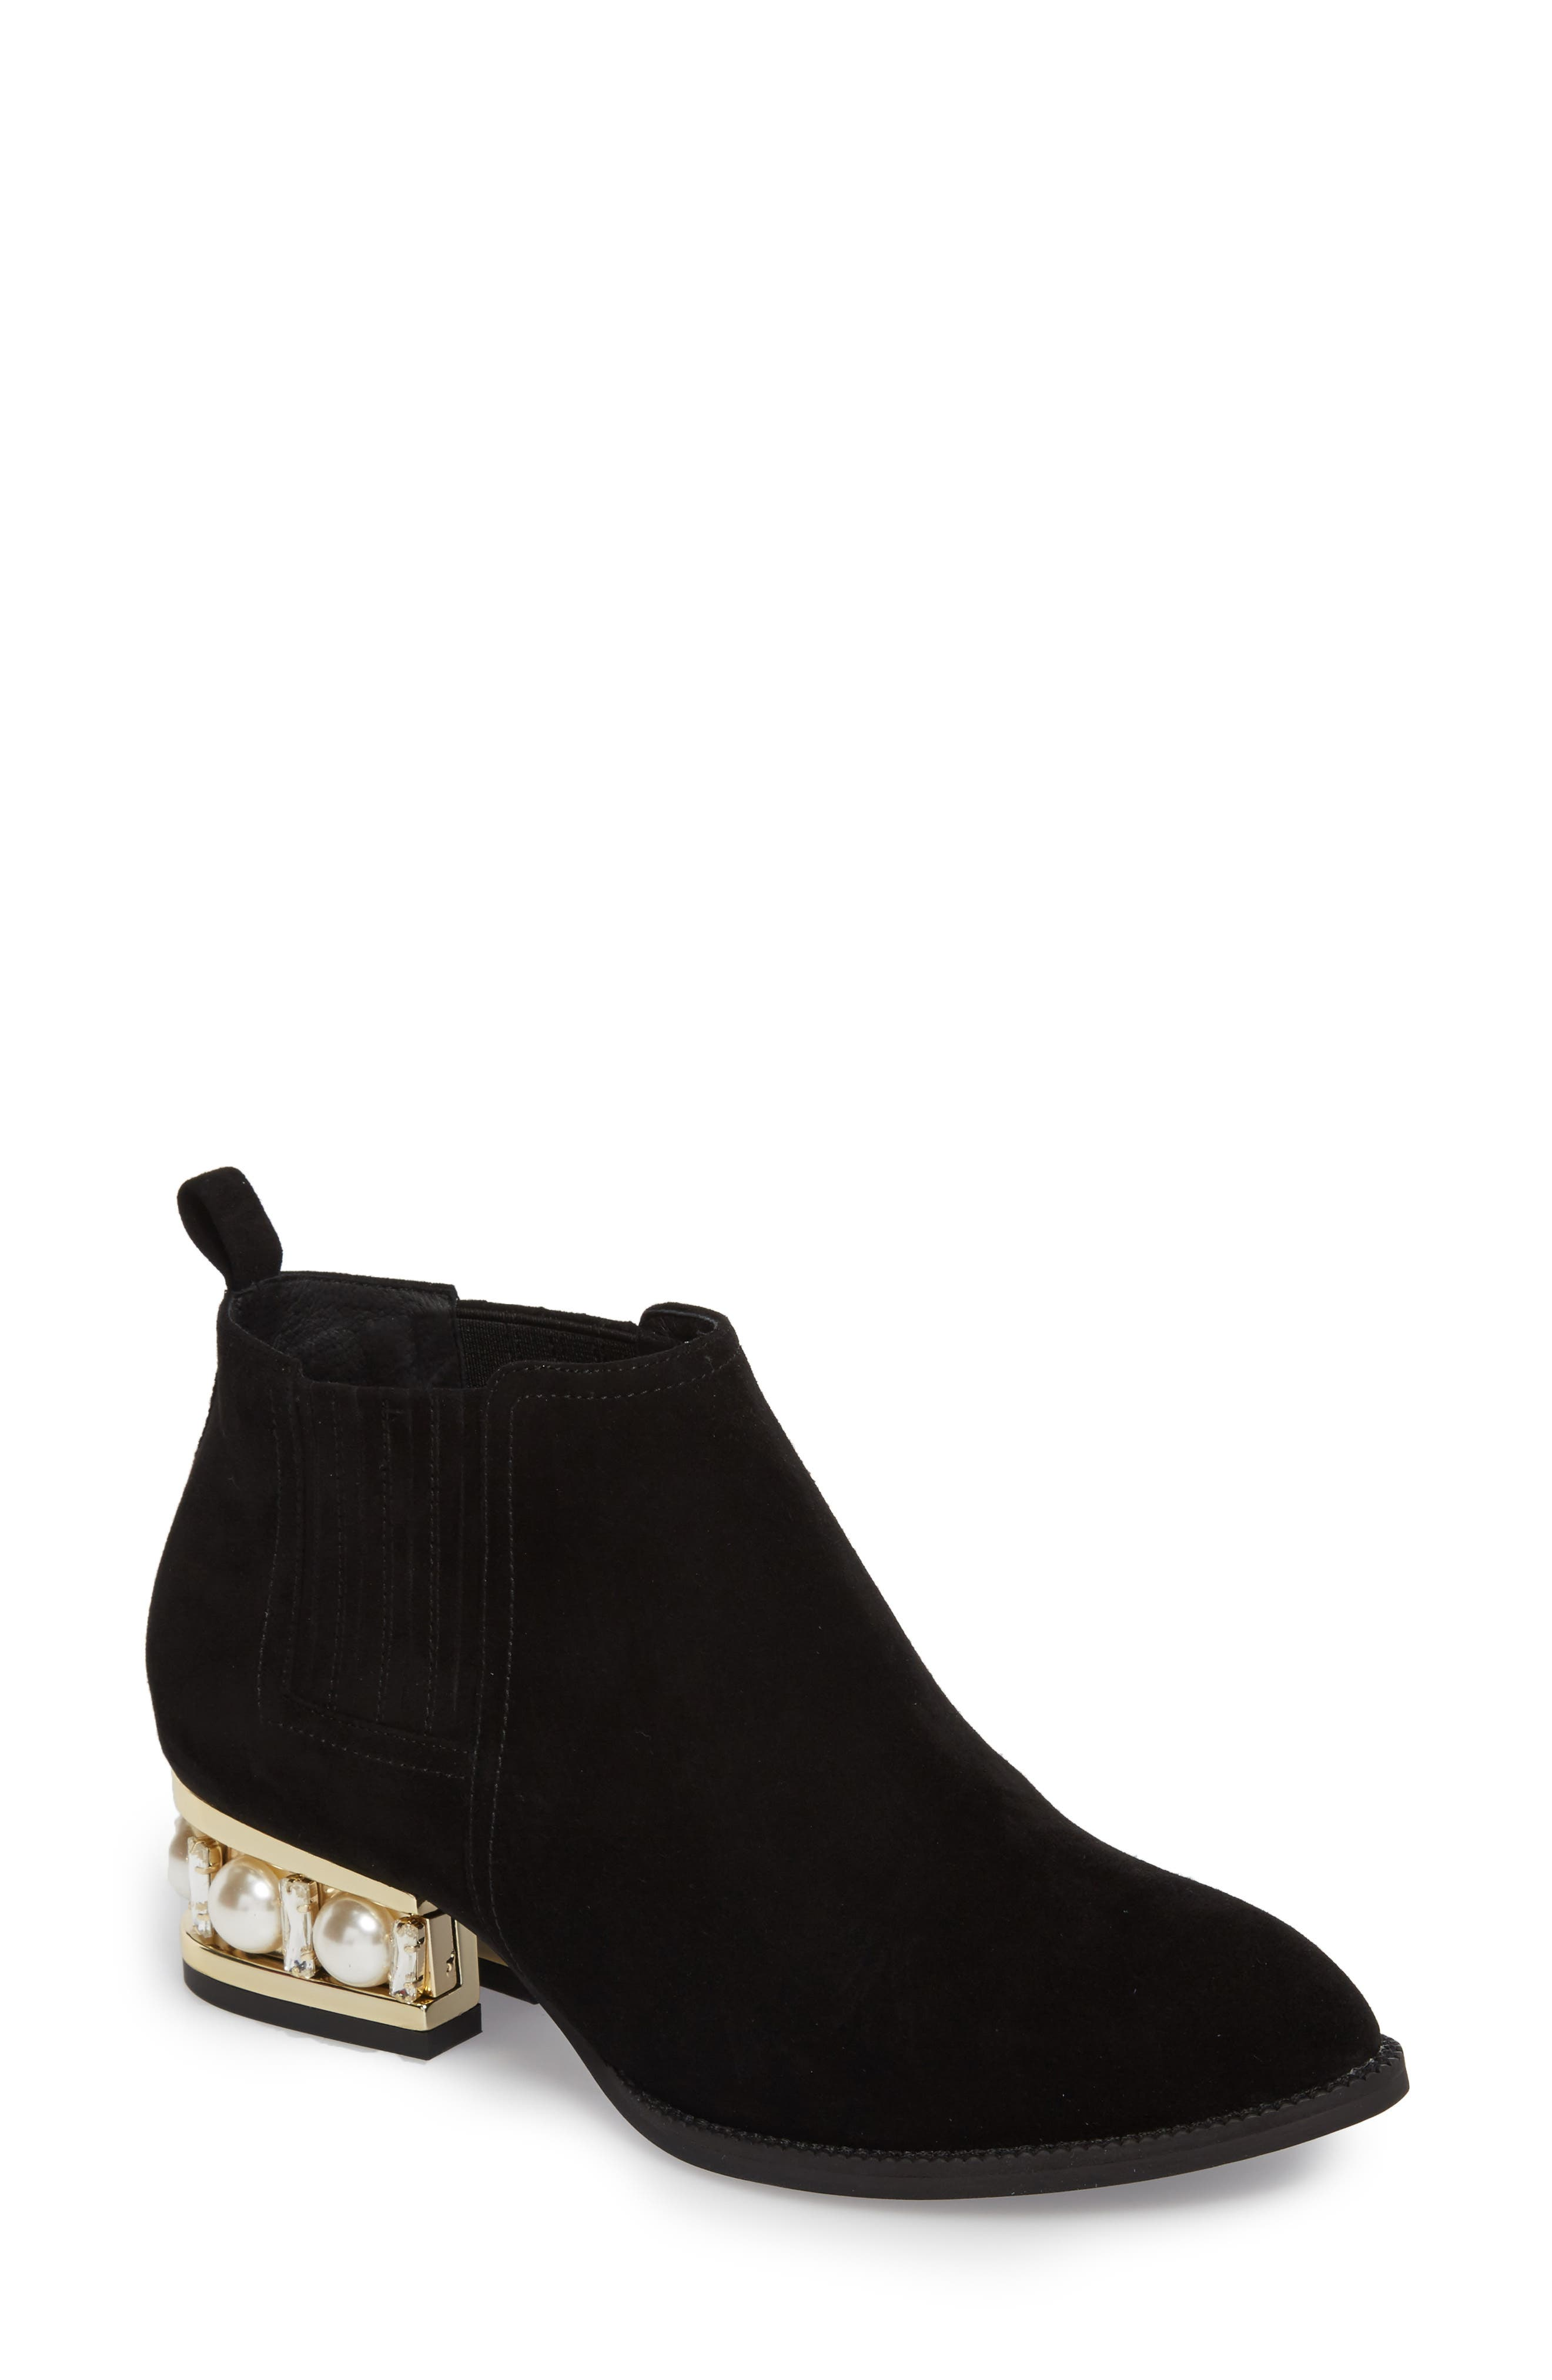 Alternate Image 1 Selected - Jeffrey Campbell Metcalf Embellished Bootie (Women)